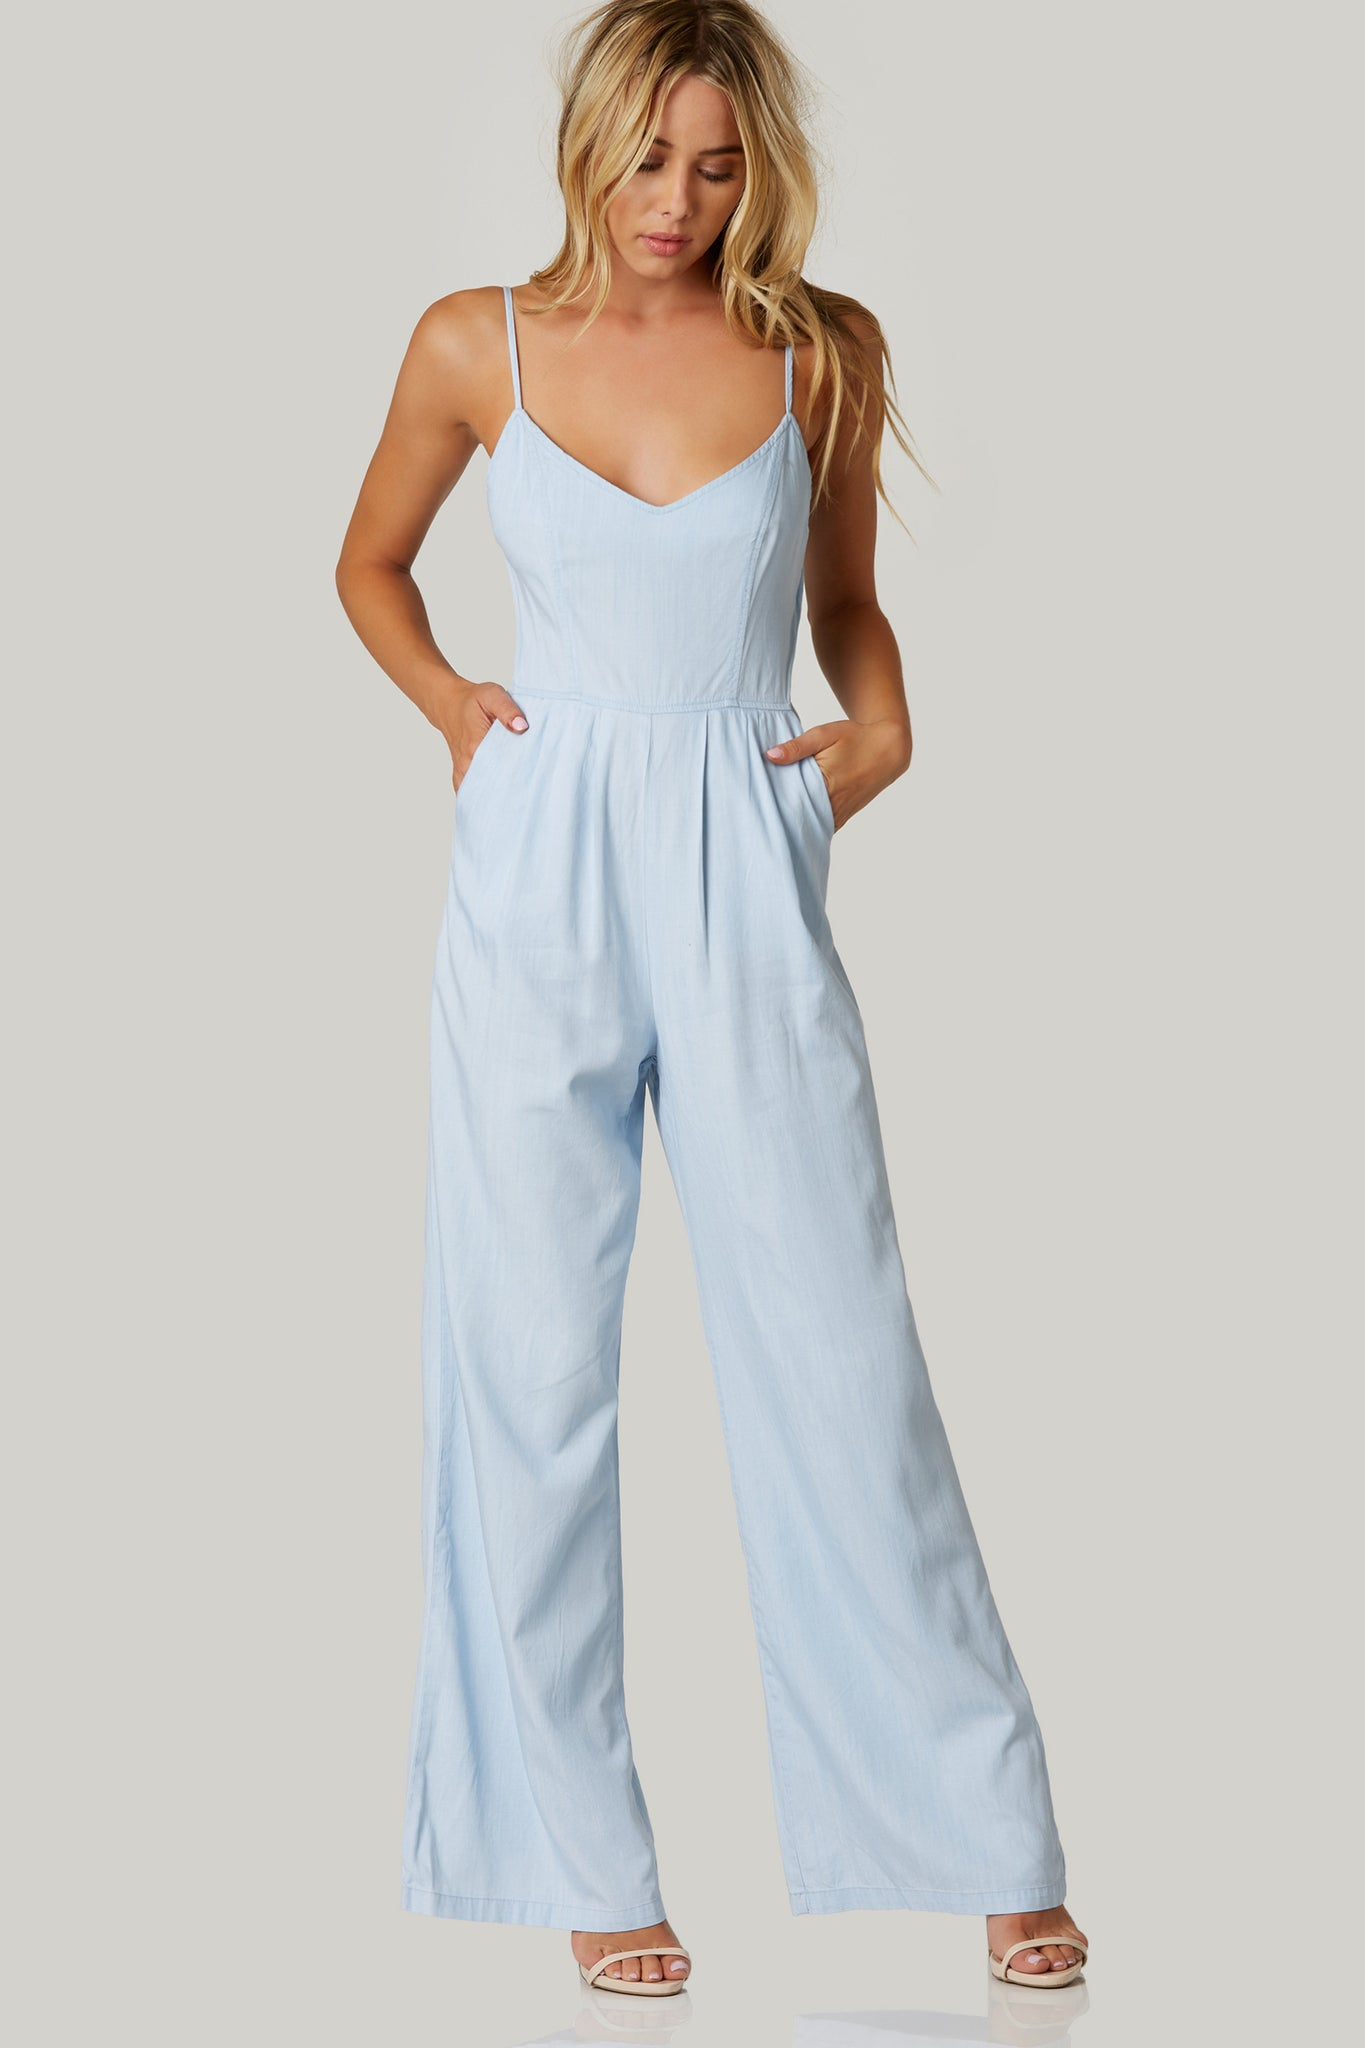 V-neck sleeveless jumpsuit with adjustable shoulder straps and wide leg fit. Open back with tie and zip closure.